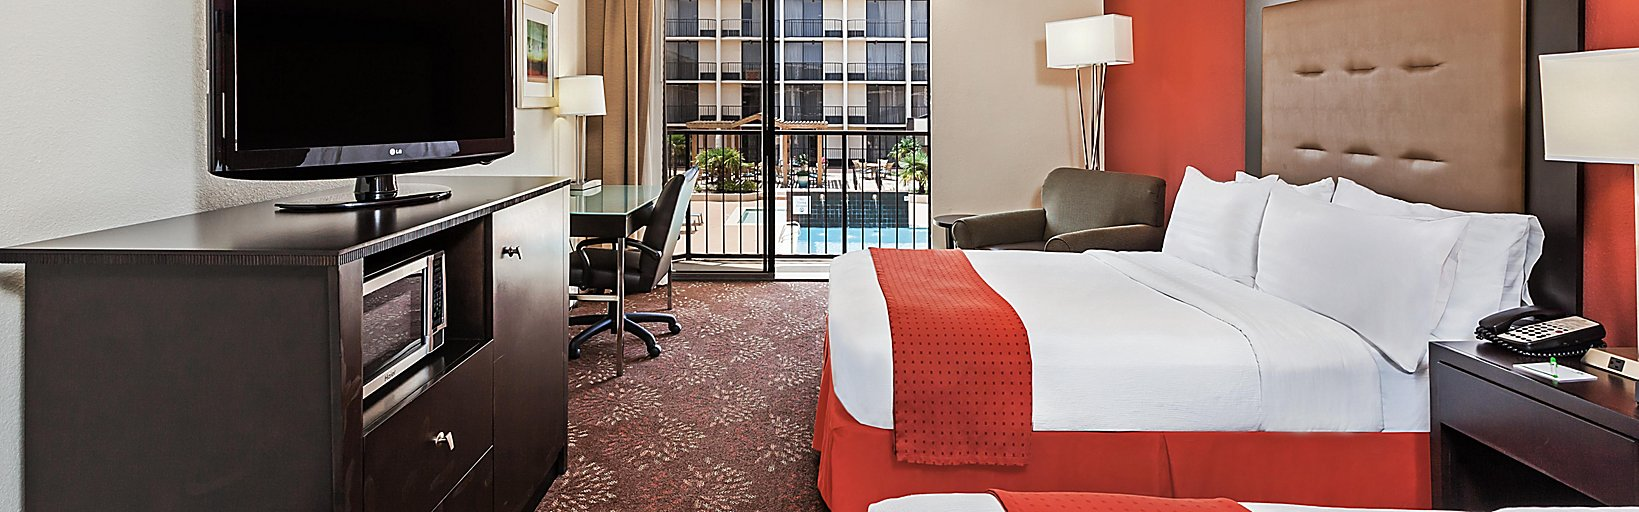 Tremendous Holiday Inn Tyler South Broadway Room Pictures Amenities Machost Co Dining Chair Design Ideas Machostcouk